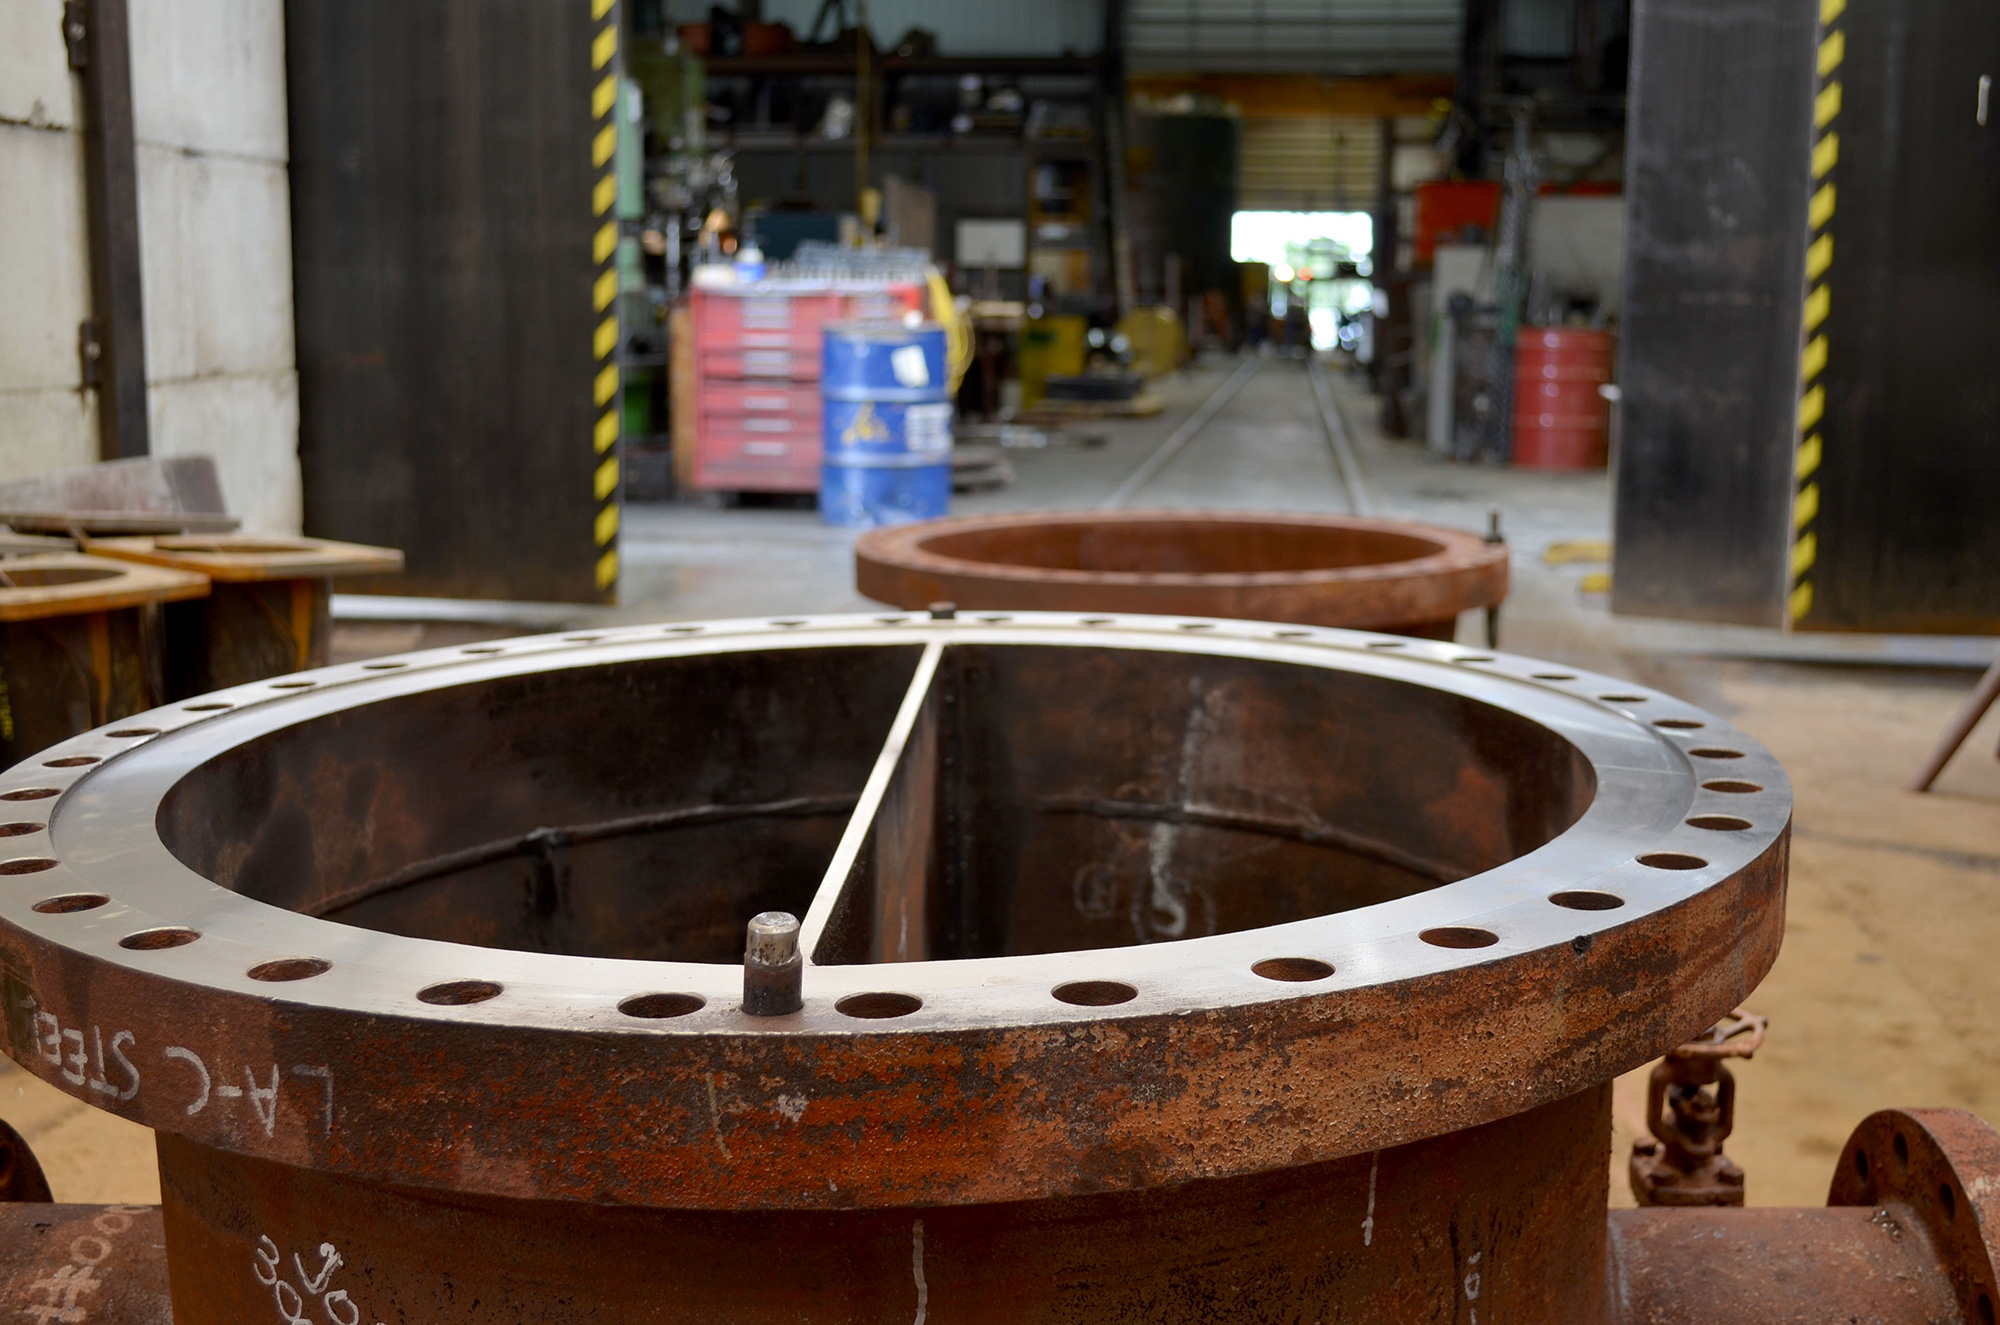 large pipe flanges exiting x-ray facility